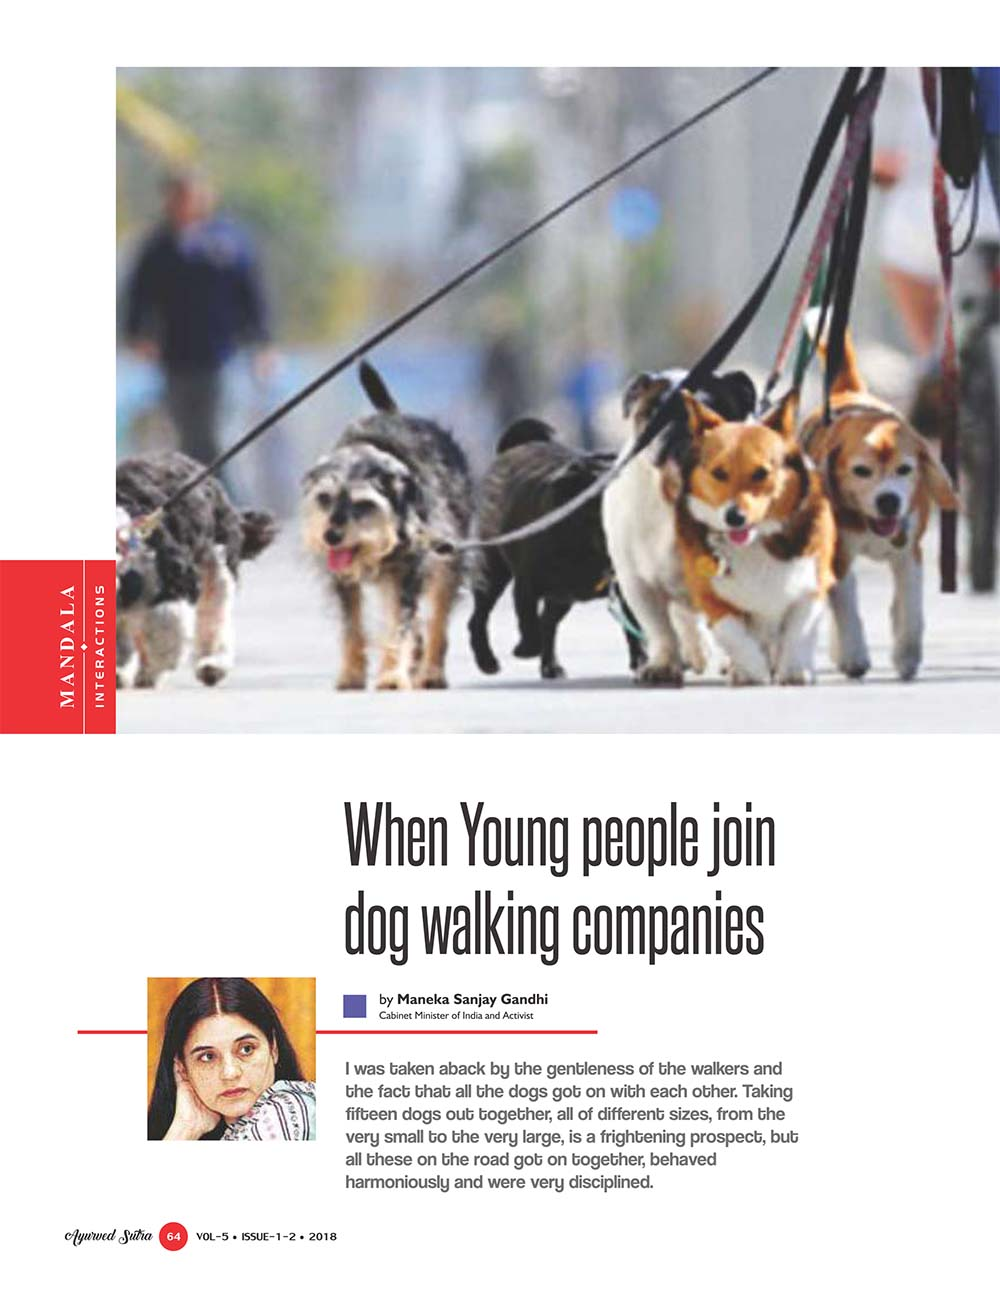 Ayurvedsutra Vol 05 issue 01 02 66 - When Young people join dog walking companies